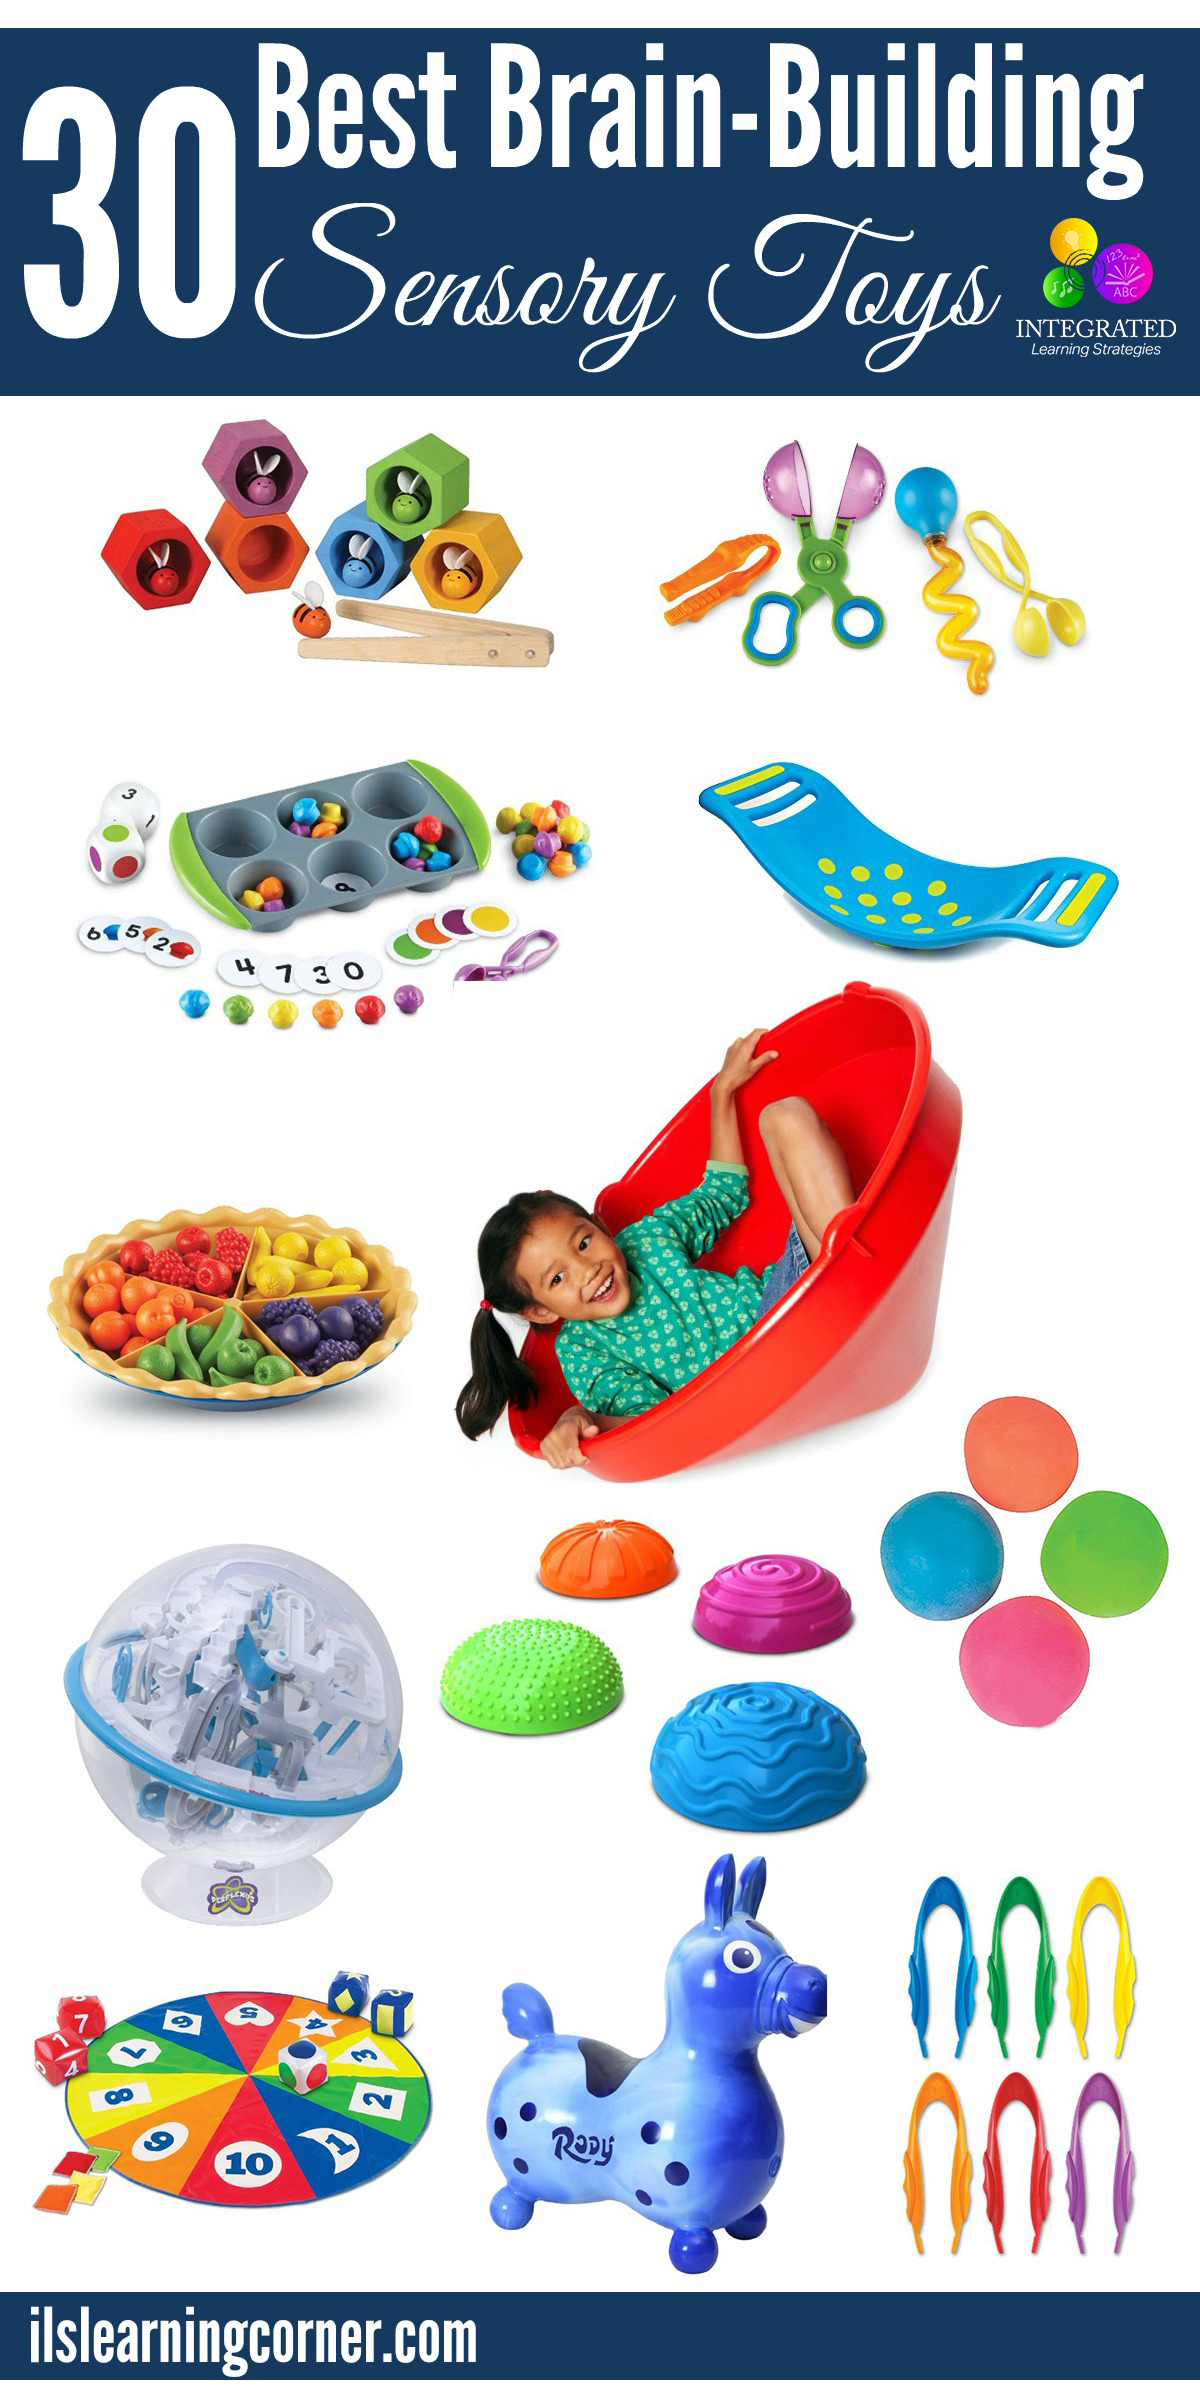 Brain Development Toys : Sensory processing brain building tools for